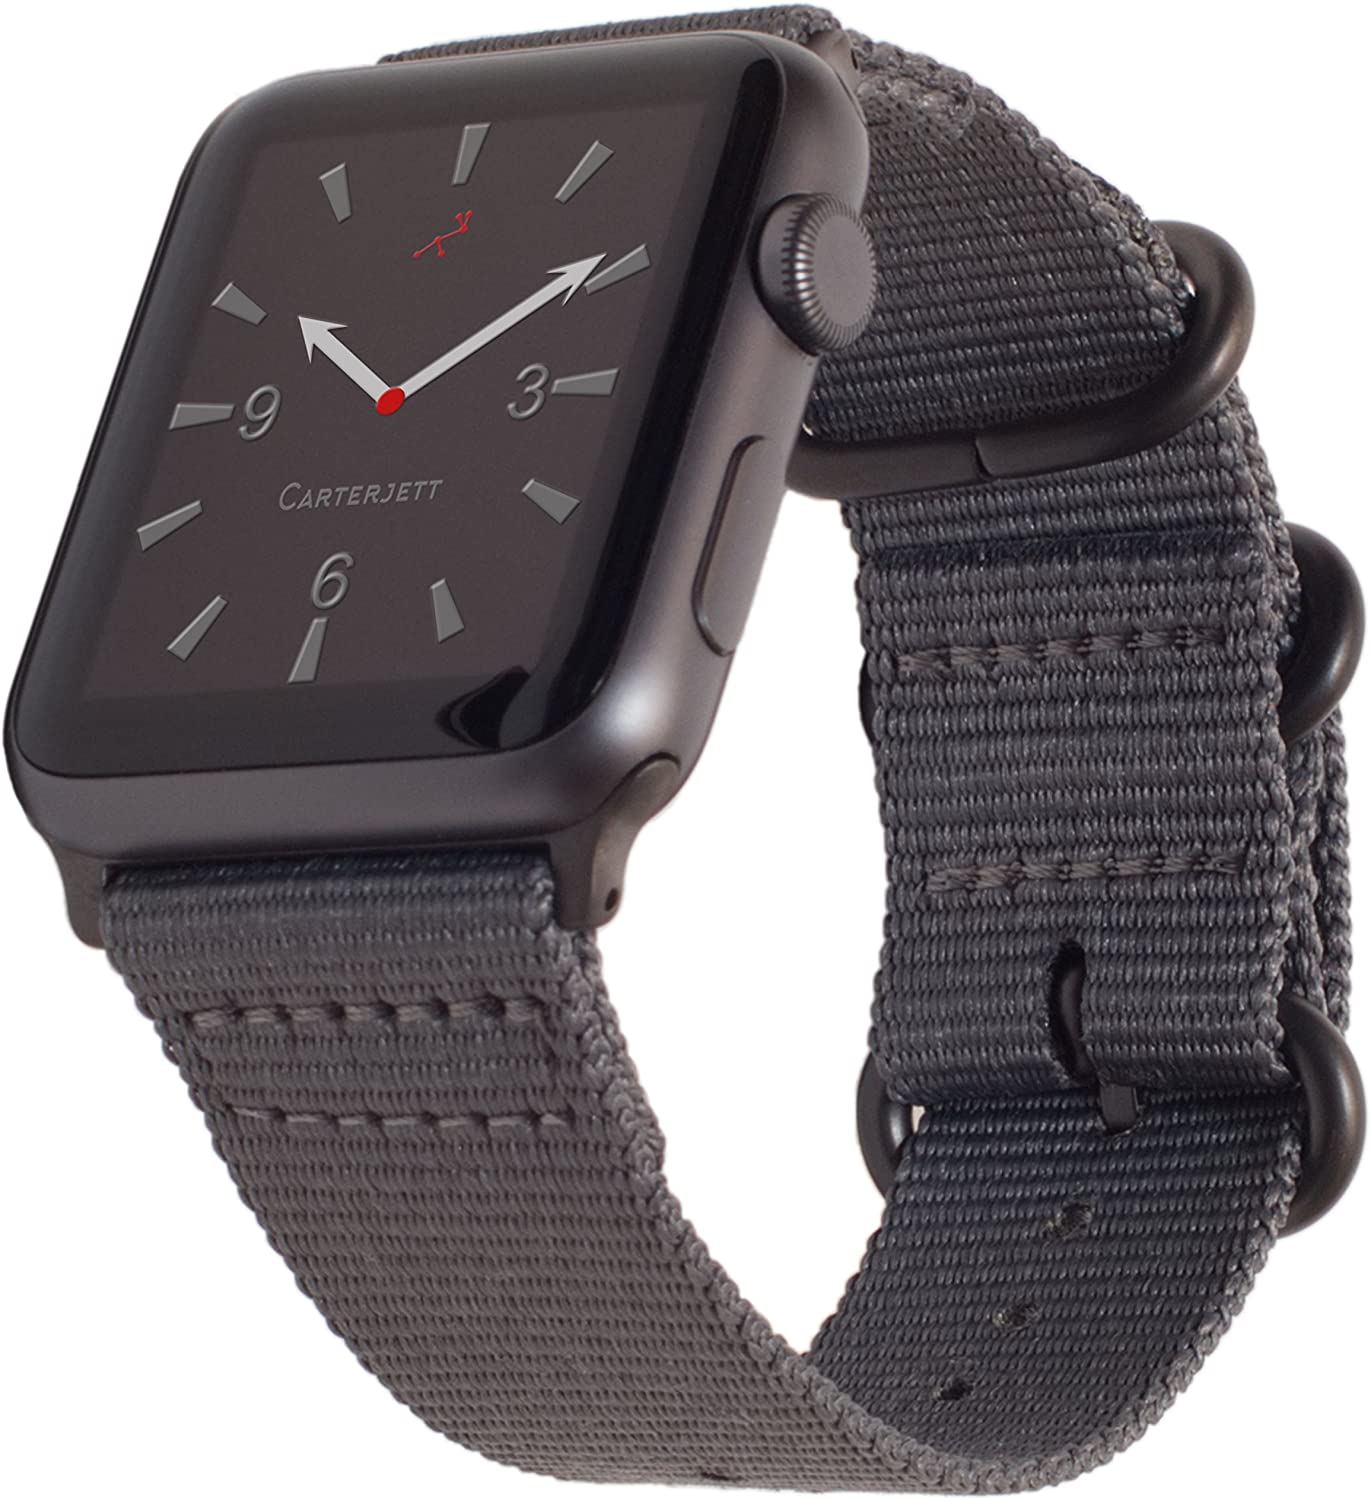 Carterjett Compatible with Apple Watch Band 42mm 44mm Women Men Nylon Rugged Replacement iWatch Band Military-Style Buckle Grey Adapters for Sport Nike Edition Series 6 & SE Series 5 4 3 2 1 (42 44 S/M/L Gray)